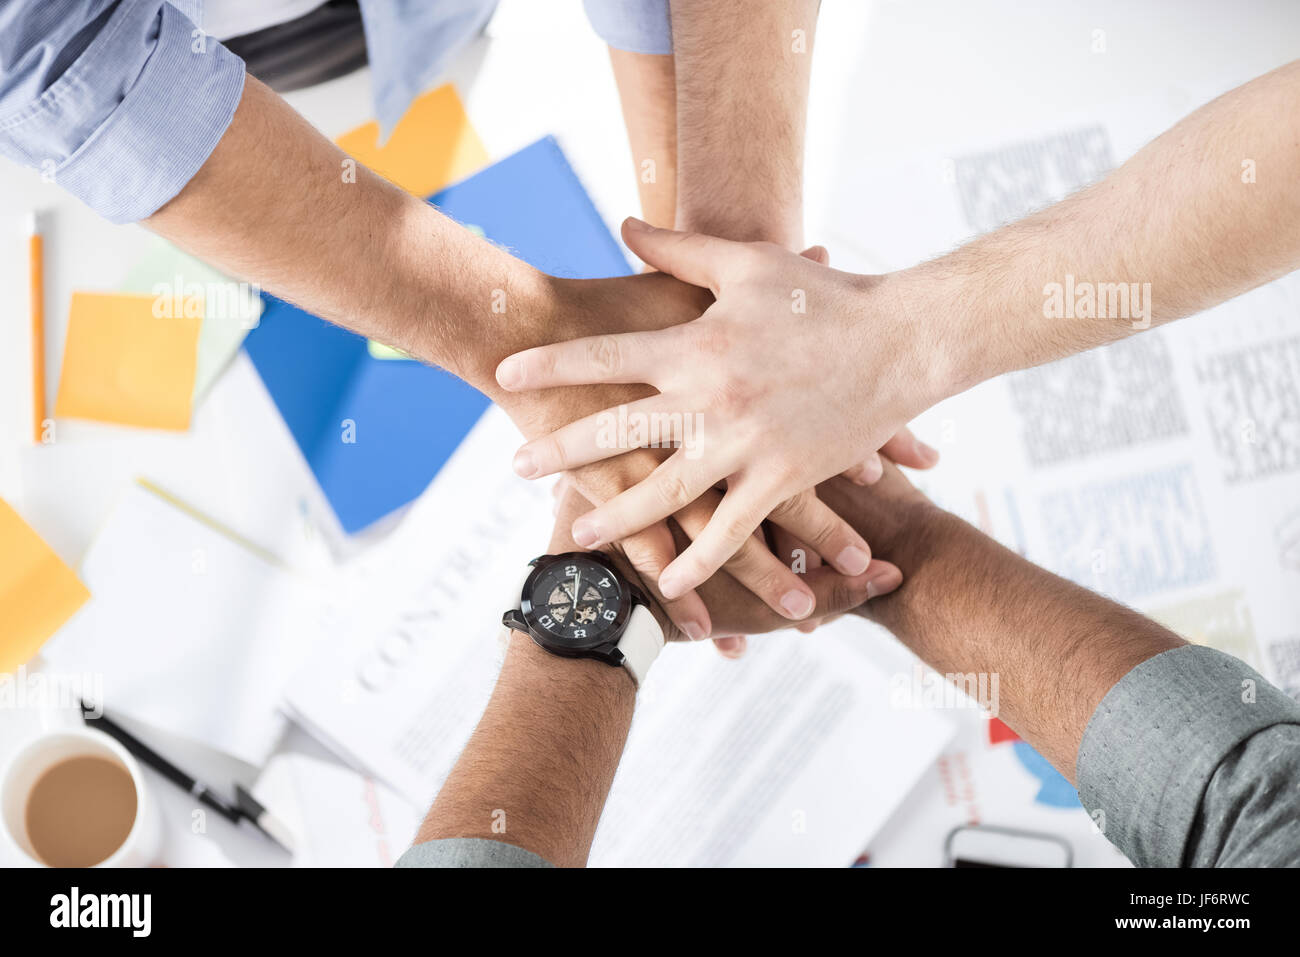 Close-up partial view of businessmen stacking hands while working on project together, business teamwork concept - Stock Image